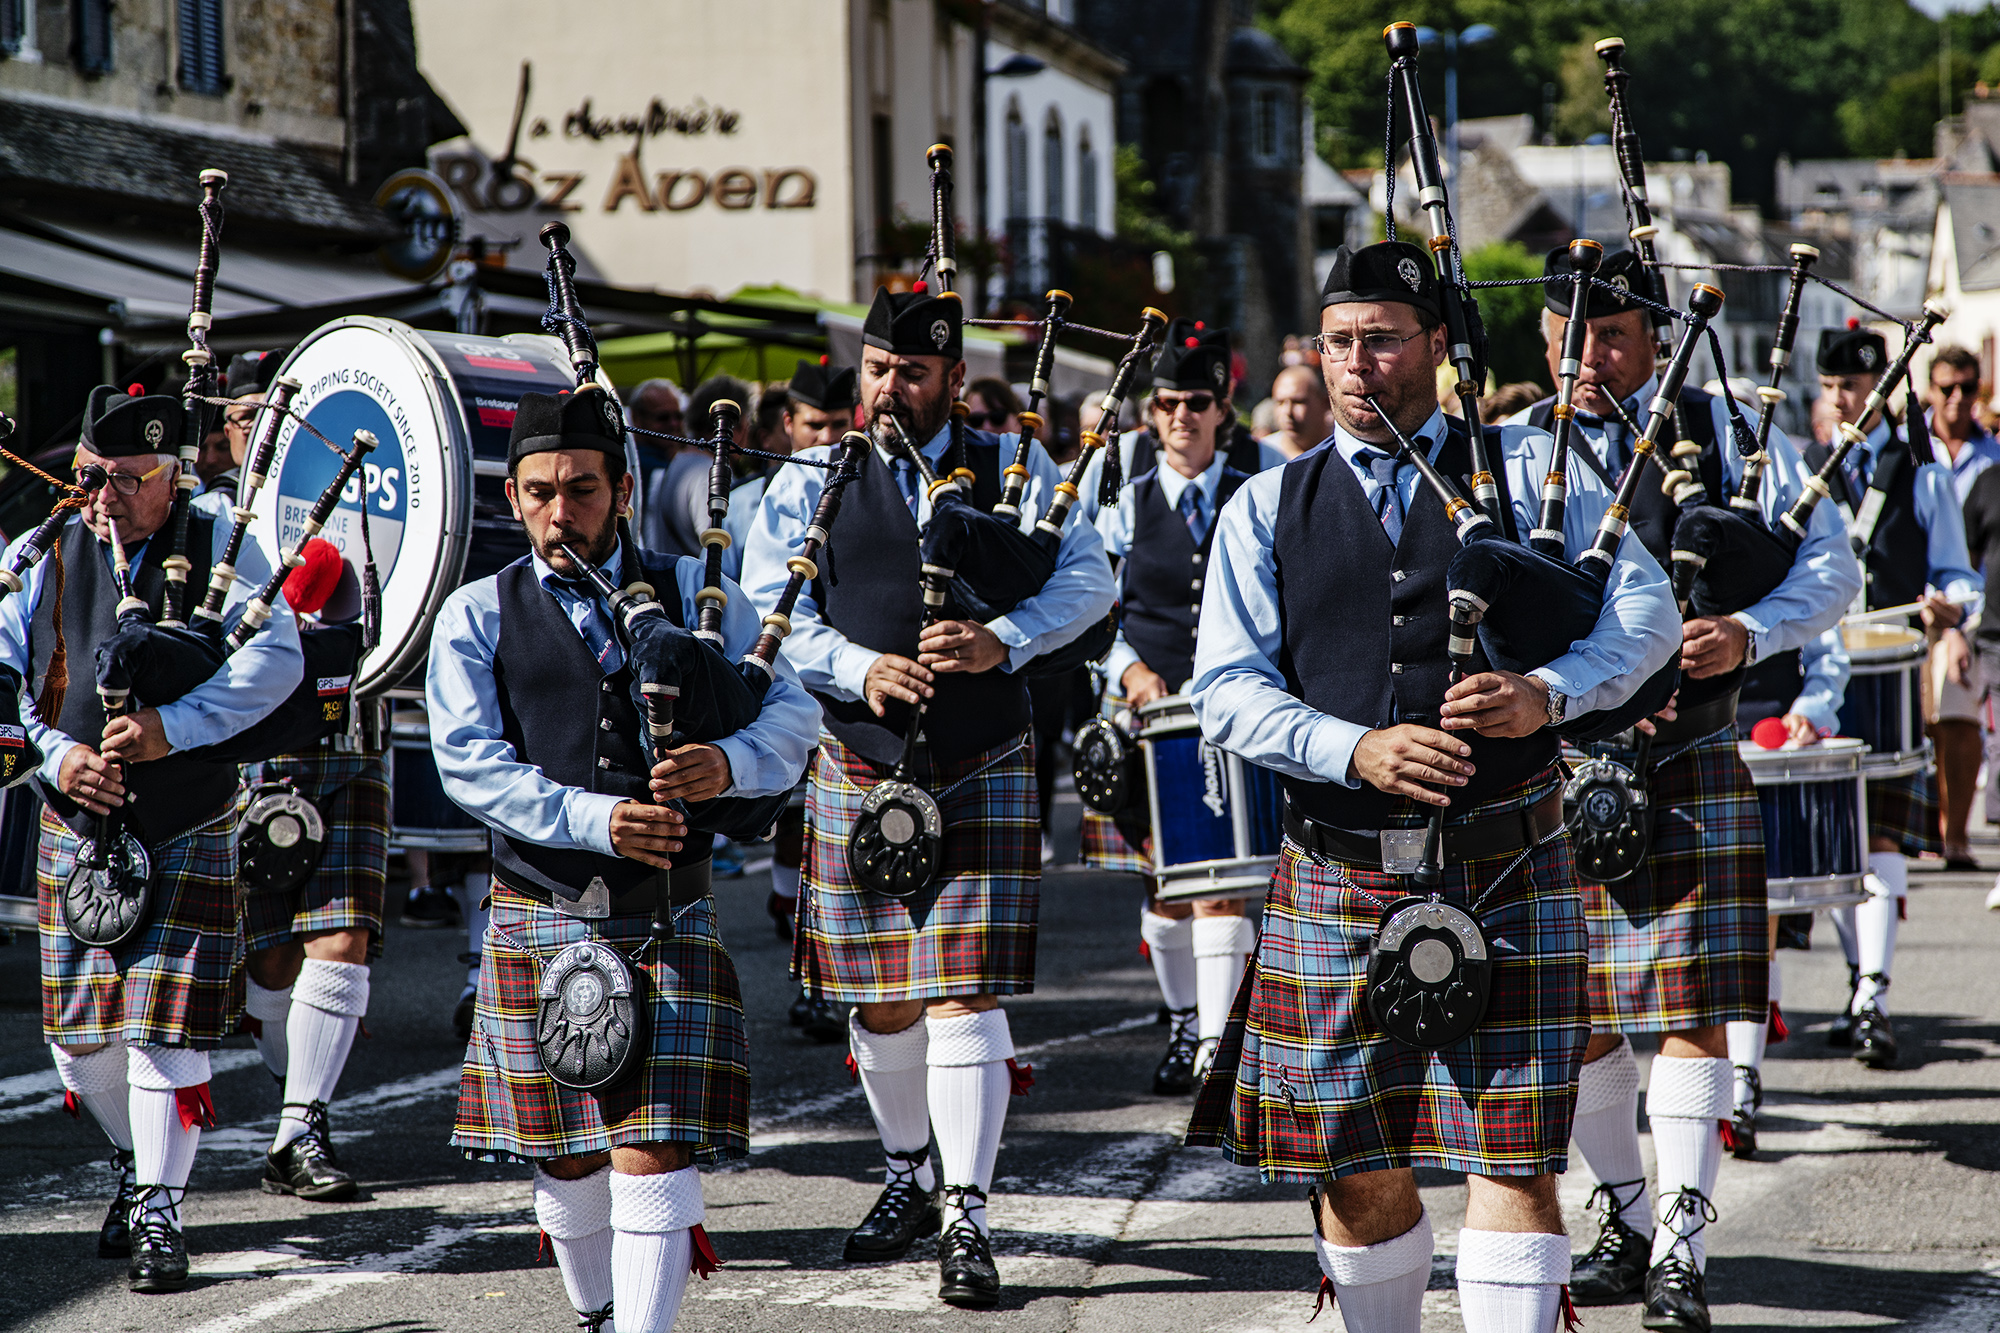 Brittany_Bagpipes_March_Pont_Aven_2017-003color.jpg